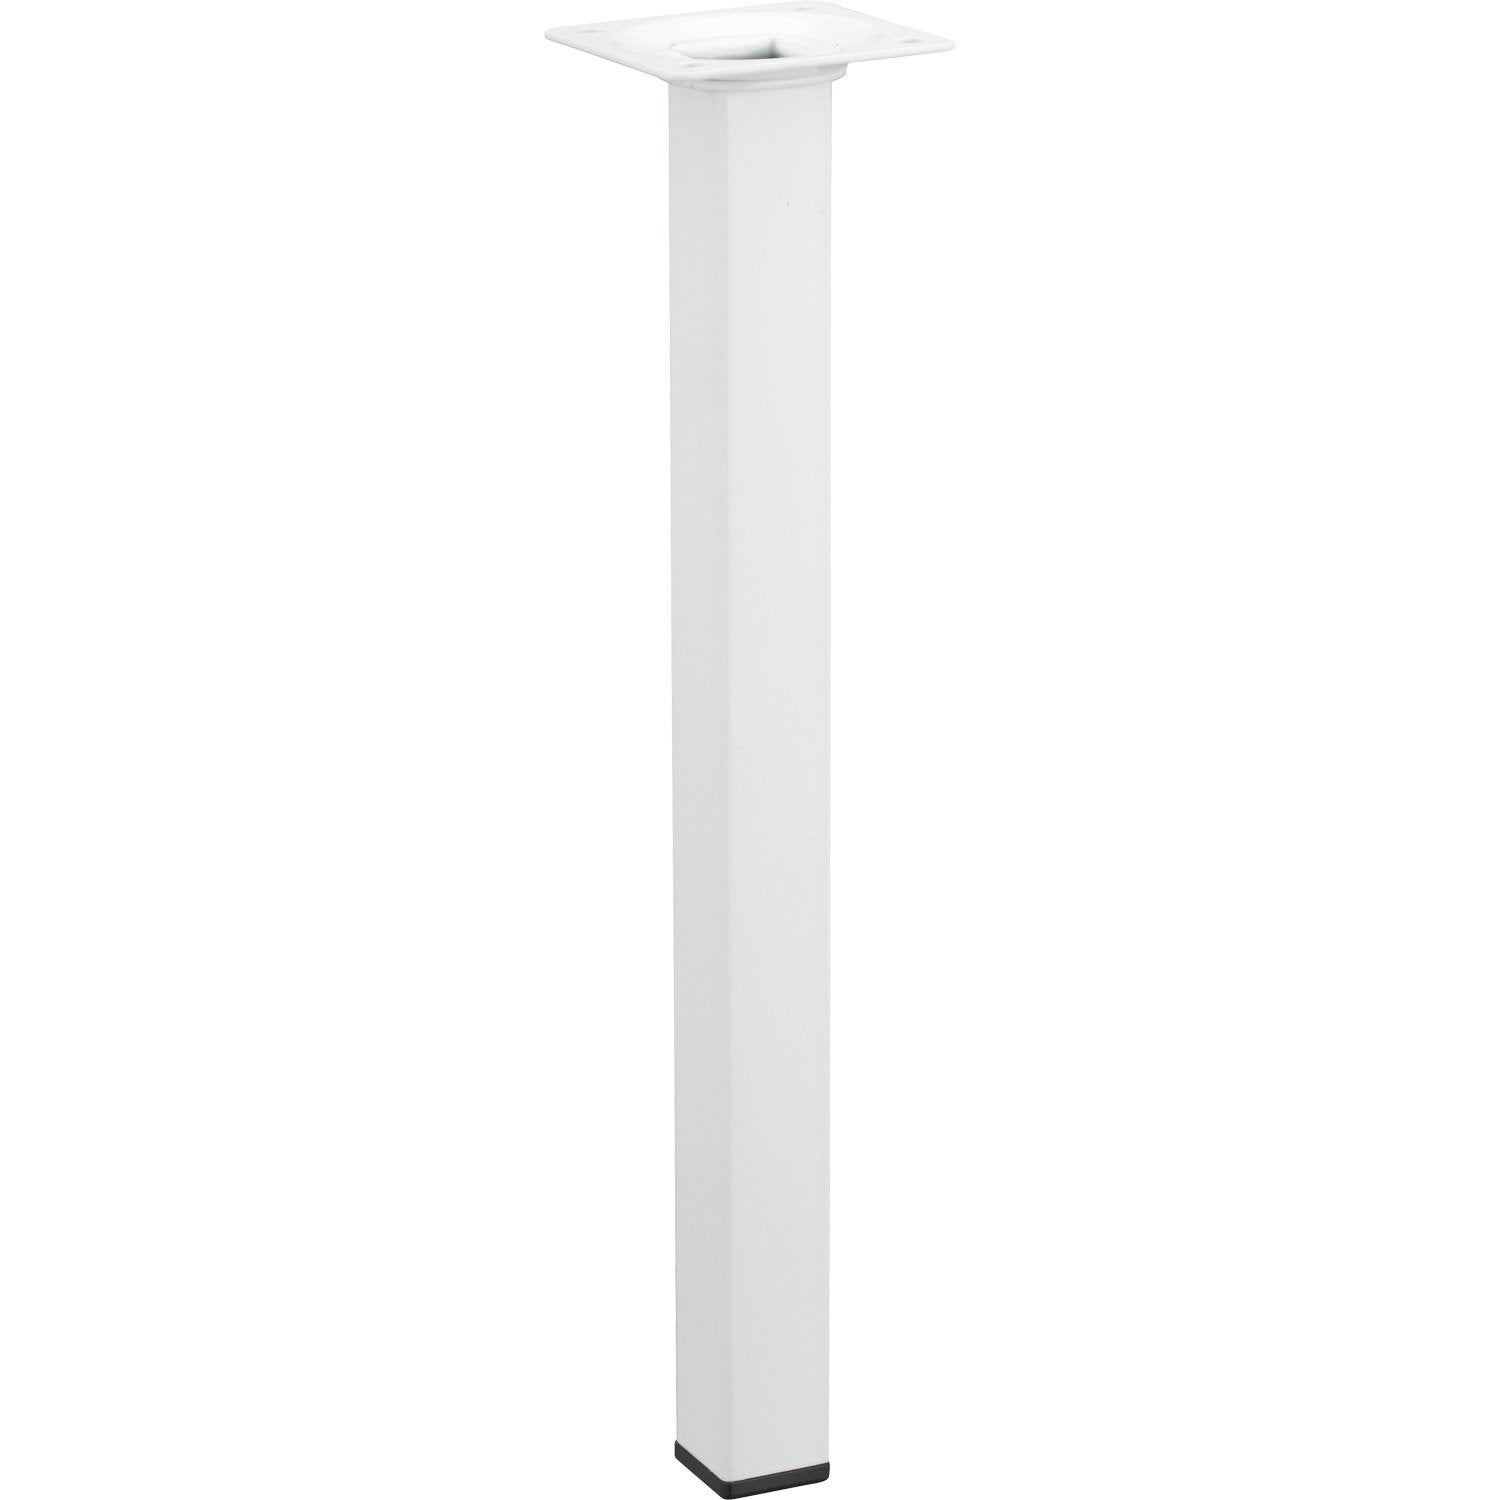 Pied de table basse carr fixe acier poxy blanc 30 cm leroy merlin - Pied de table leroy merlin ...